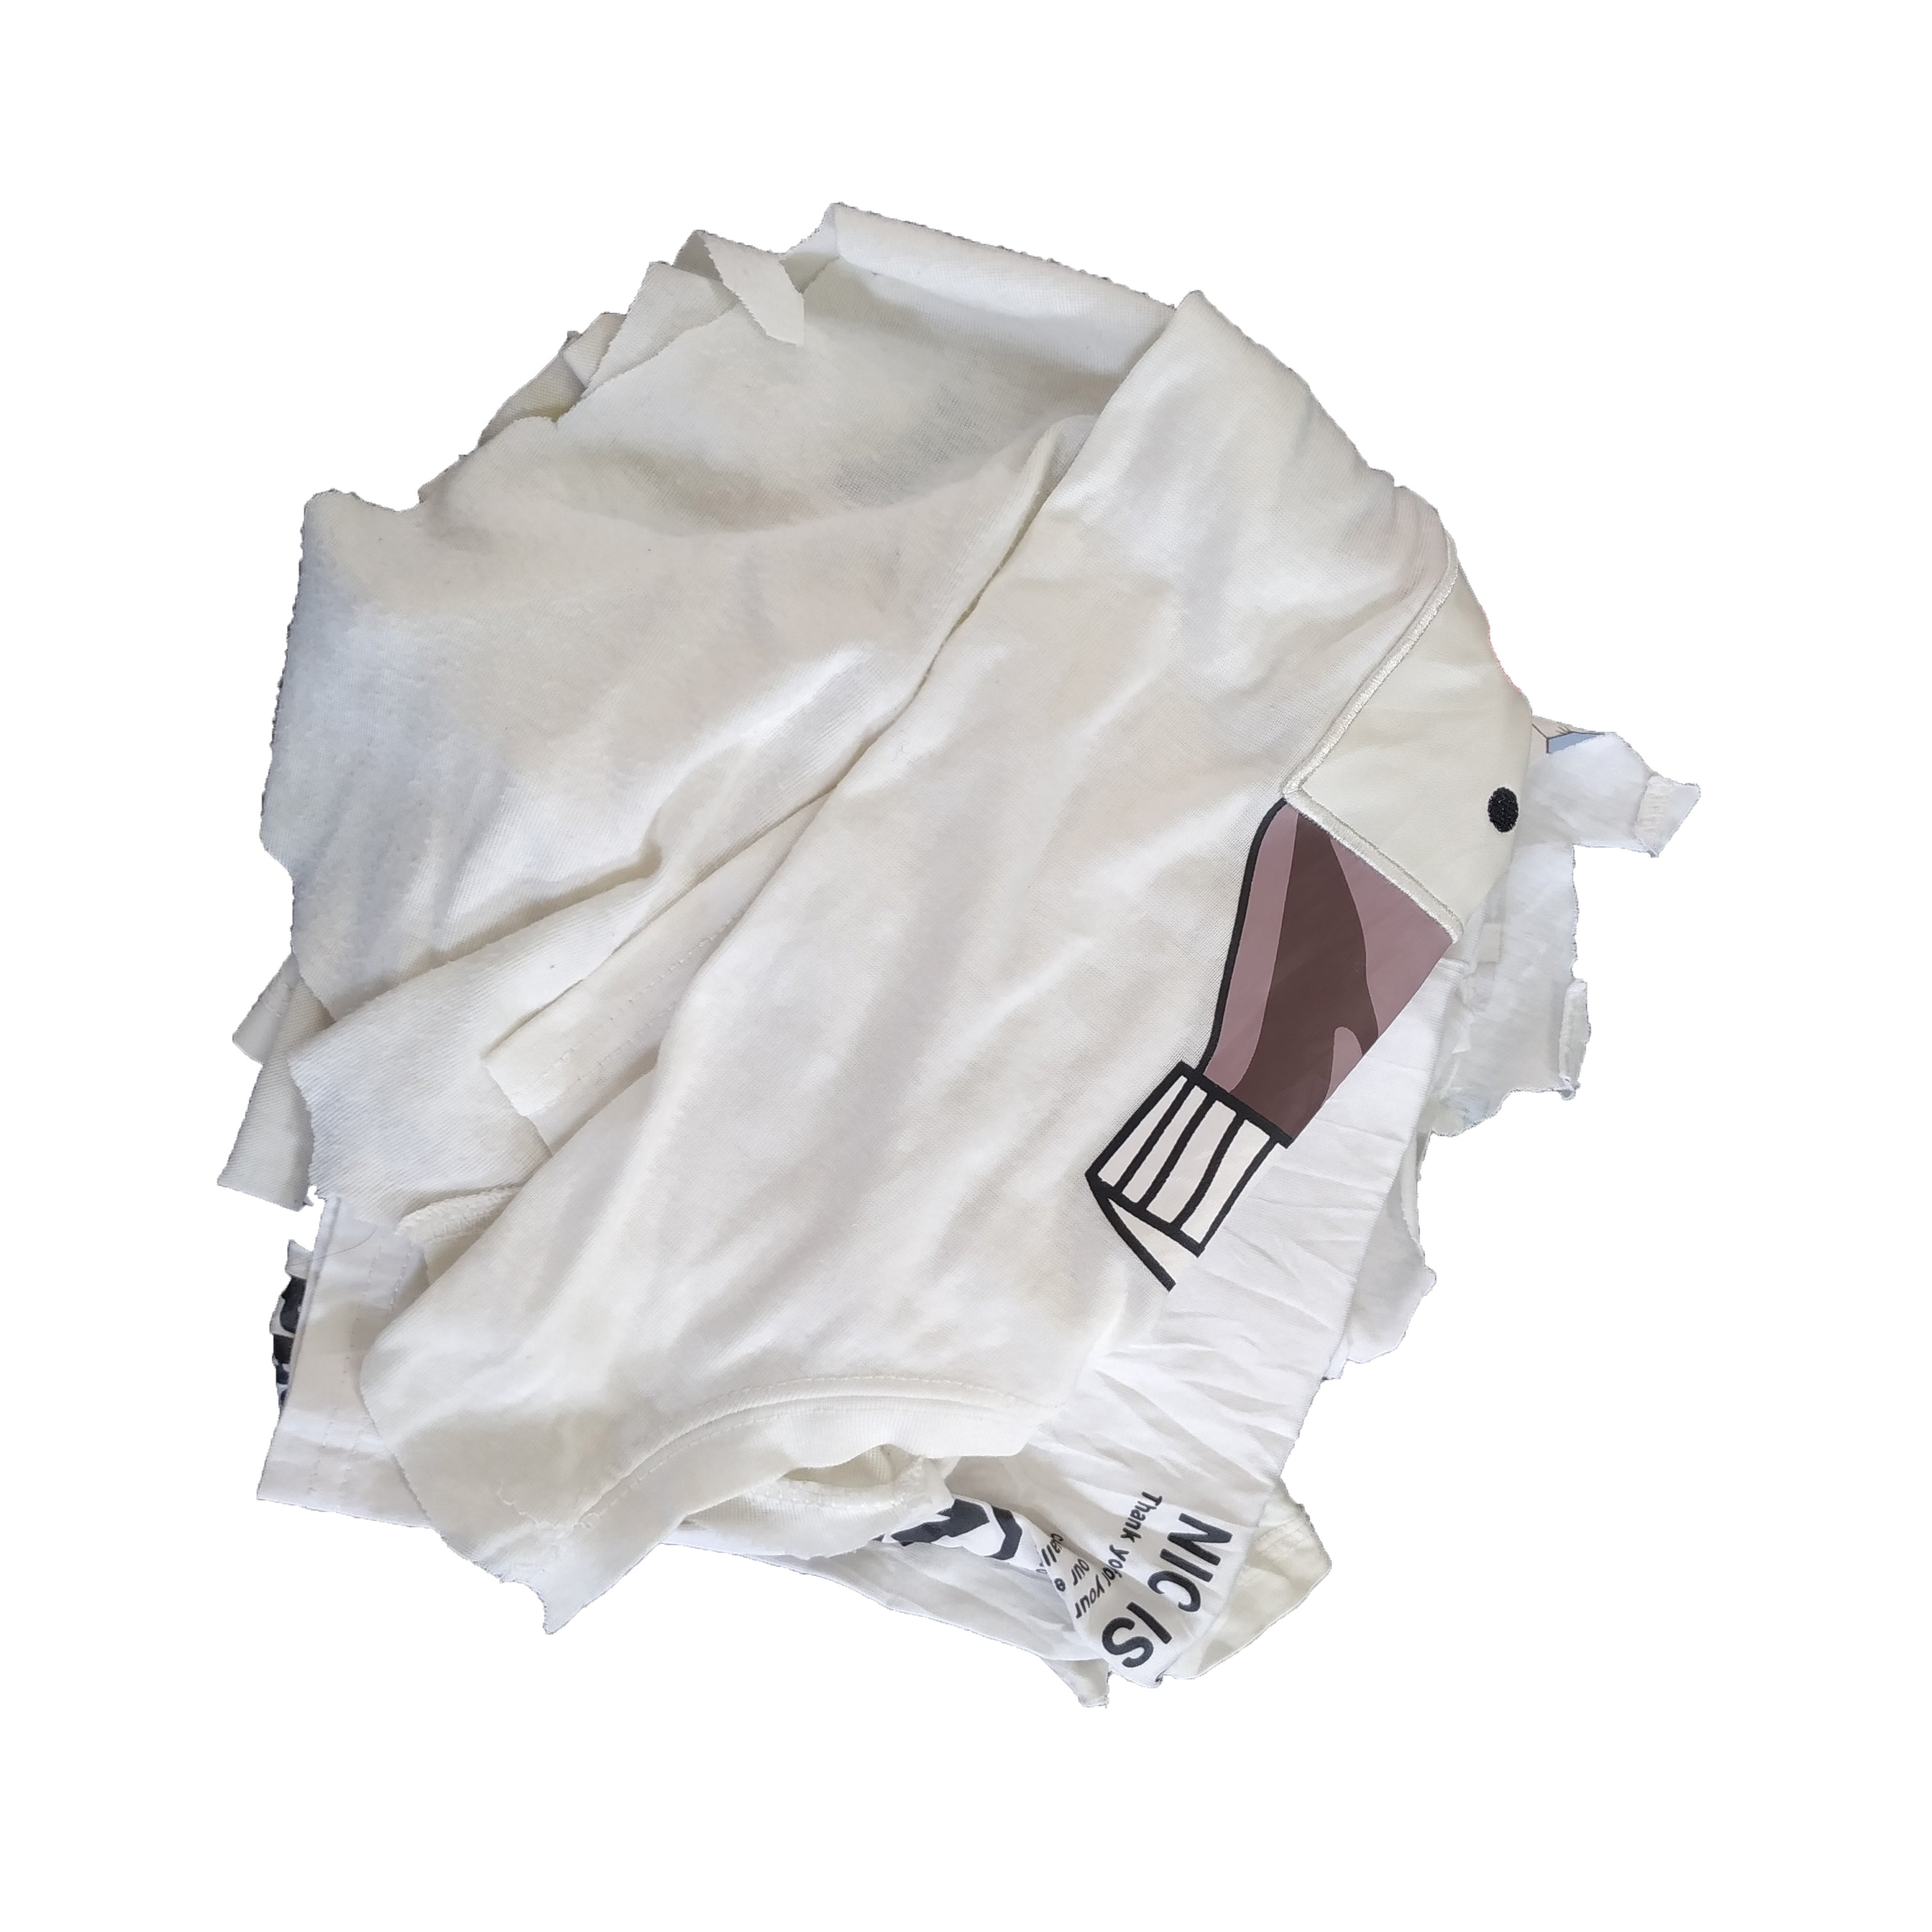 Industrial t shirt used cotton rags